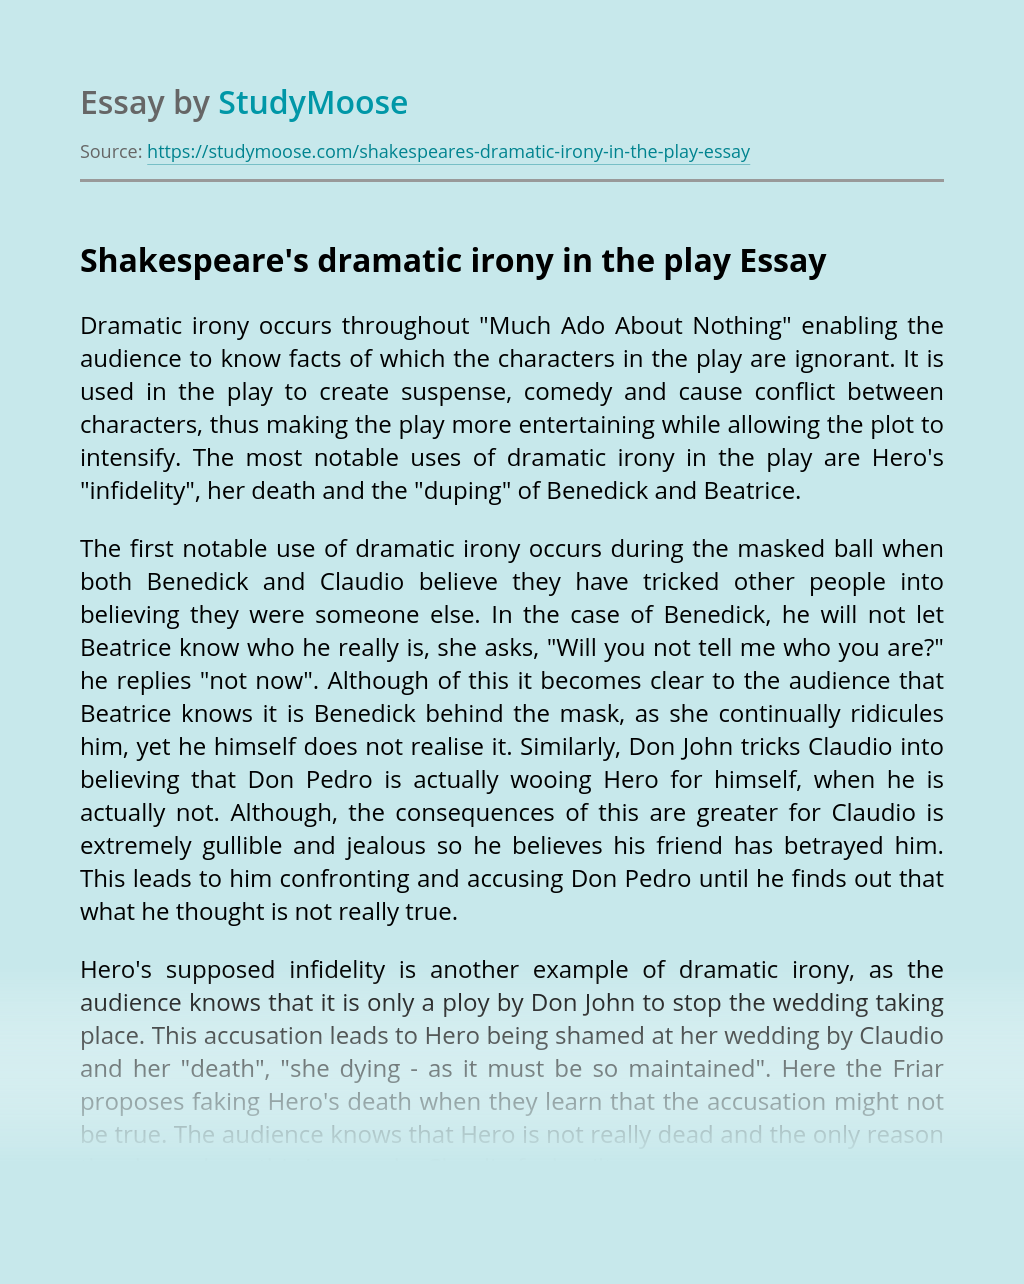 Shakespeare's dramatic irony in the play